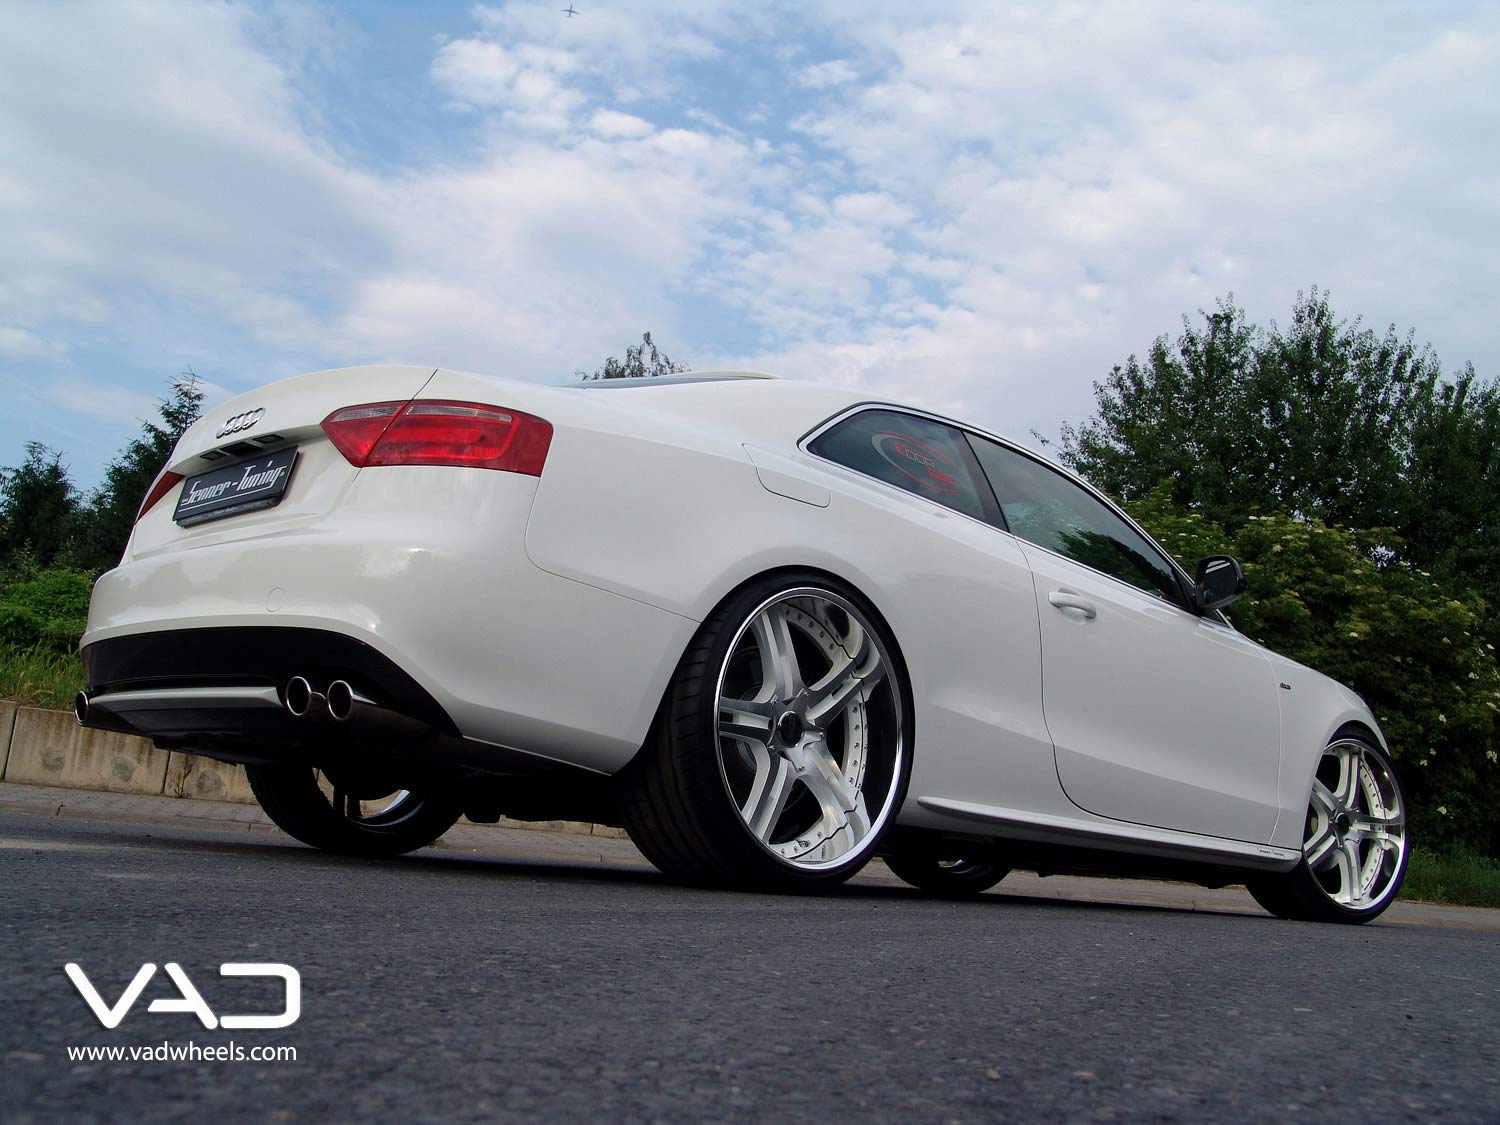 Audi-A5-Fitted-With-21''-White-&-Polished-Altstadt-S250